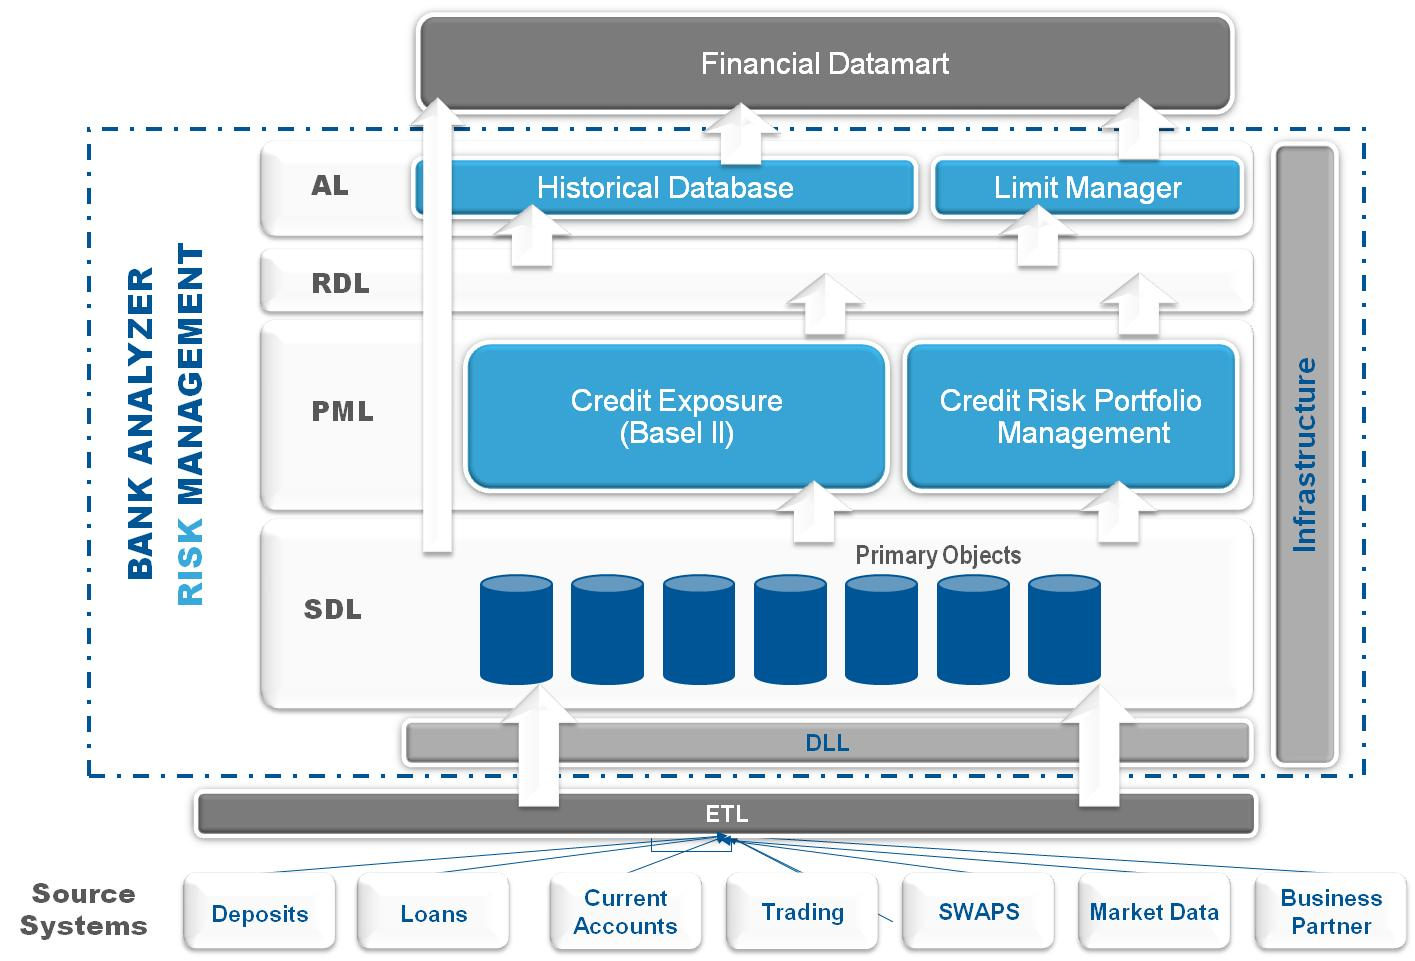 Sap Erp Architecture Diagram Parts Of A Submarine The Black Box Called Bank Analyzer Convista Consulting